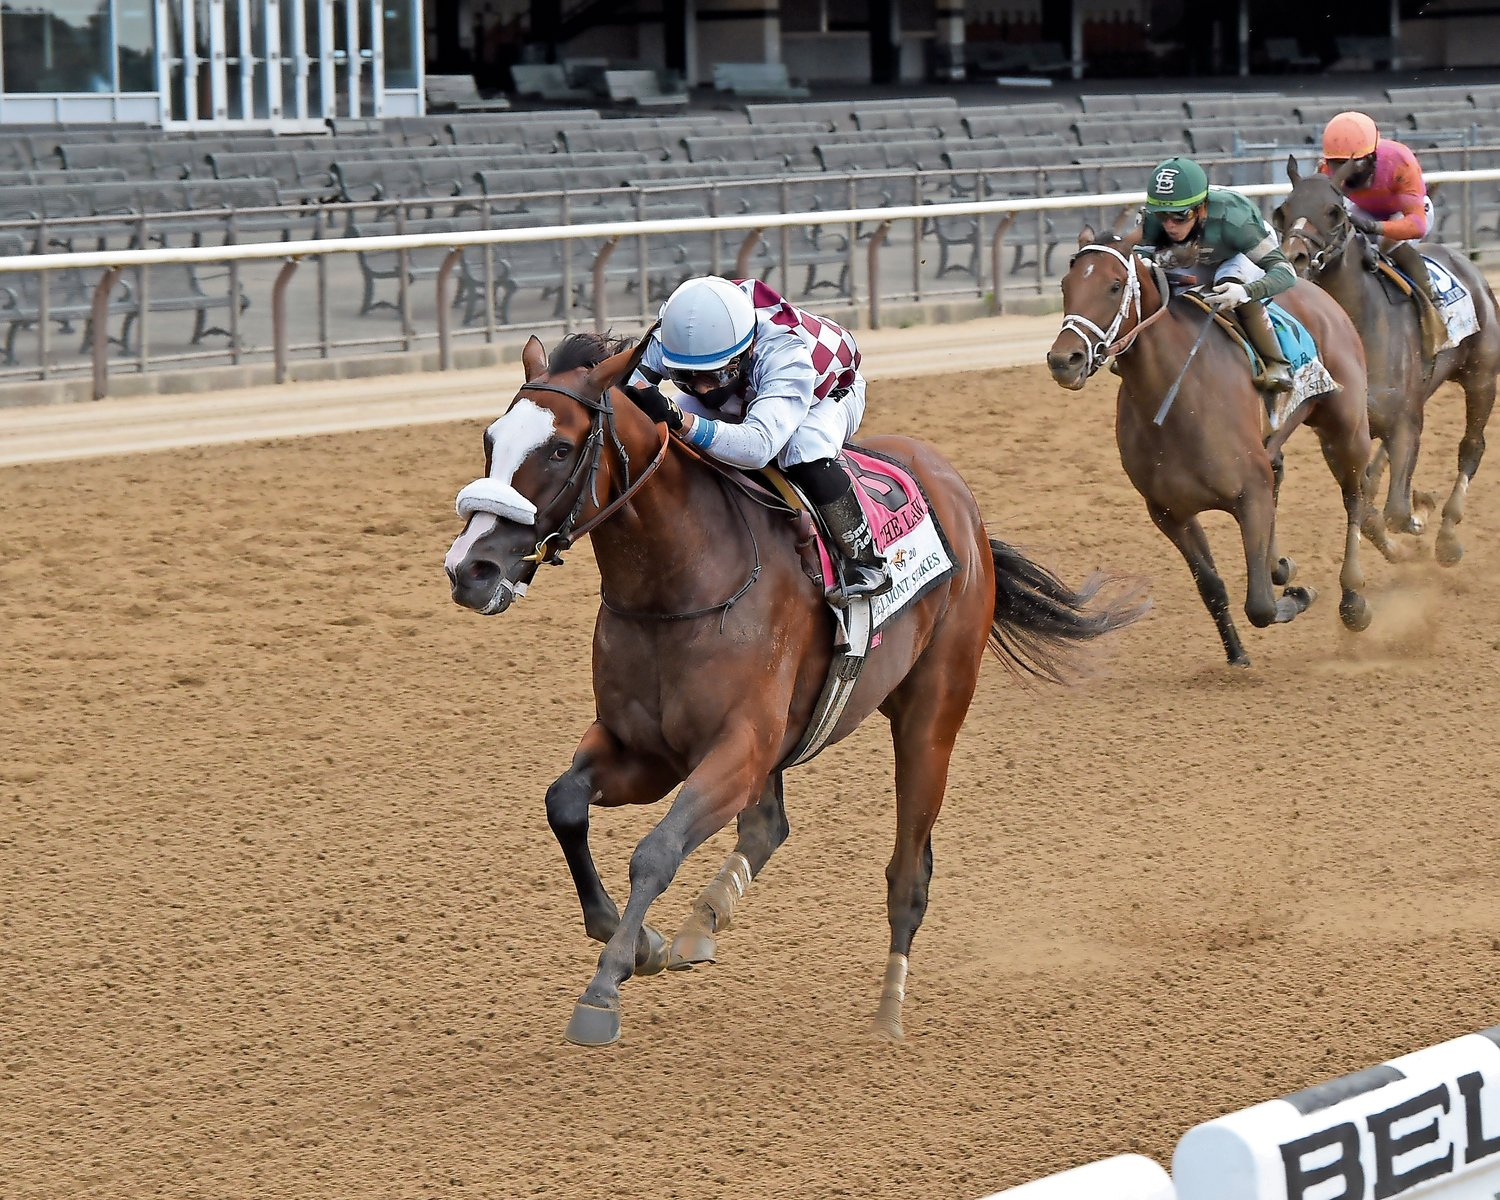 Tiz The Law crossed the finish line first at the Belmont Stakes on June 20, becoming the first New York-bred horse to win since 1882.